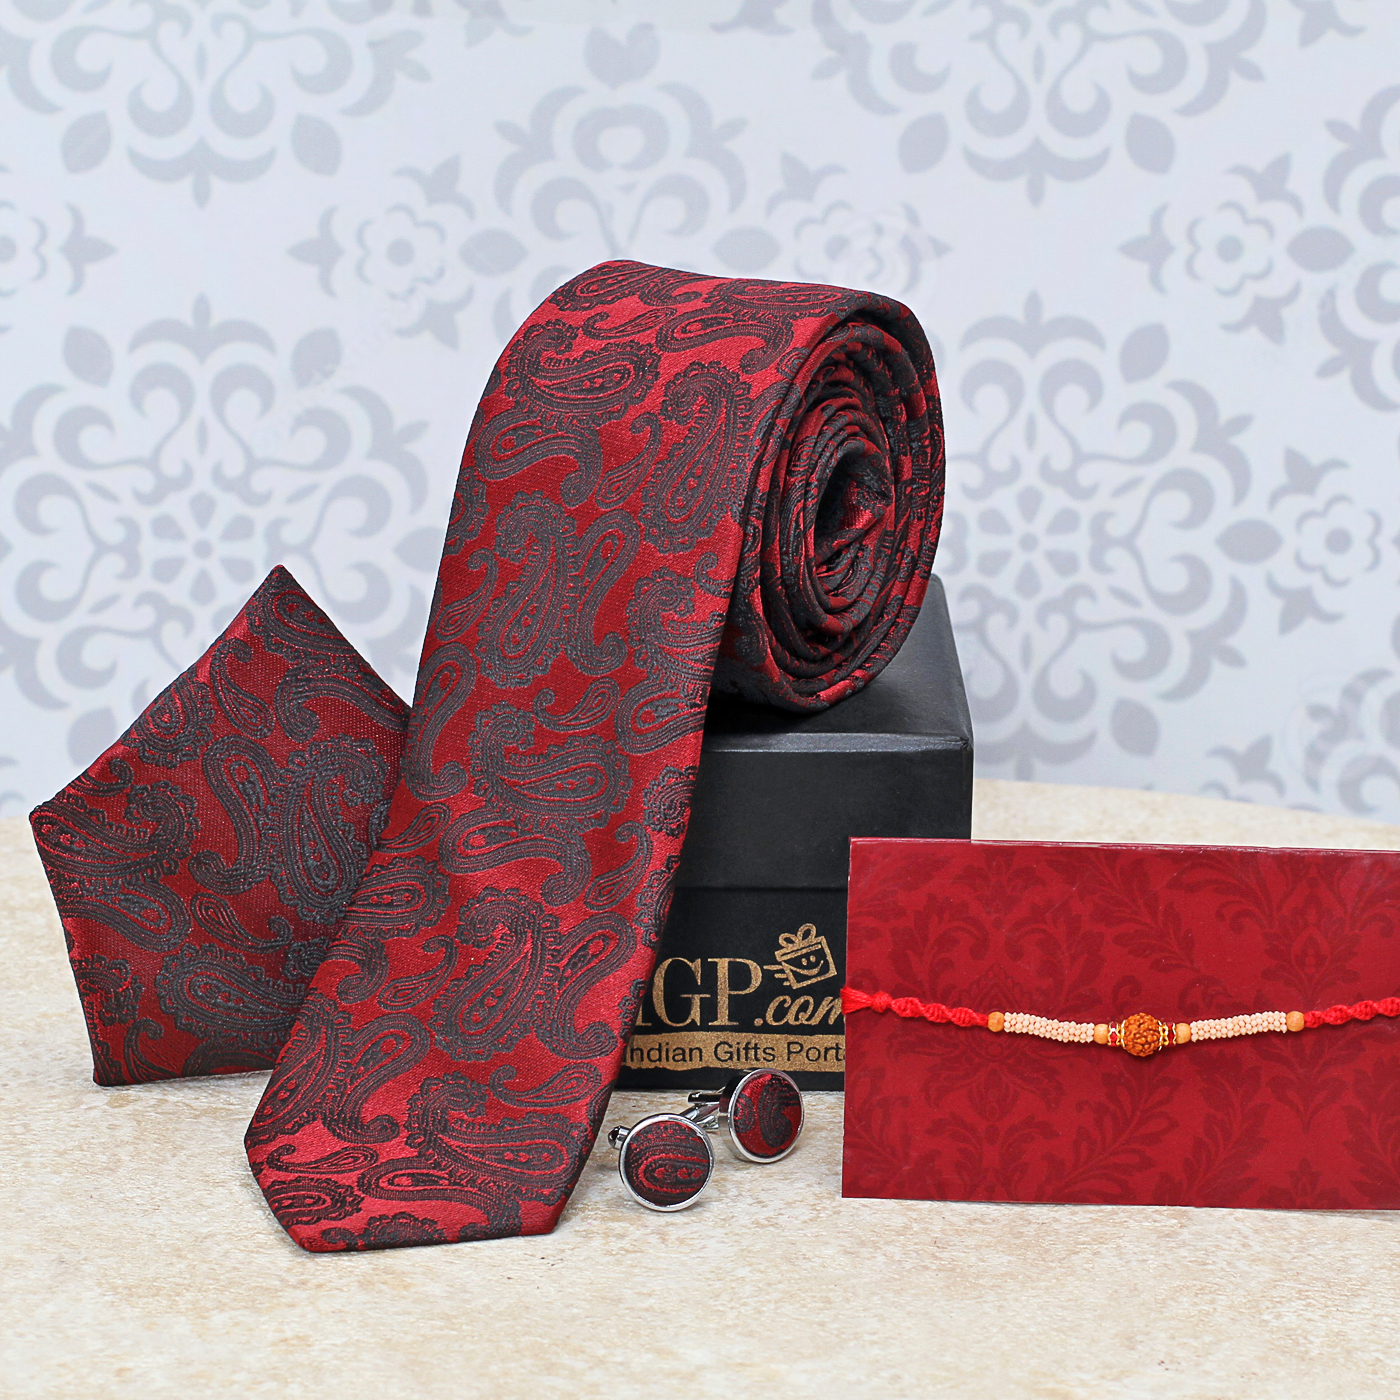 rudraksh-rakhi-with-tie-cufflinks-pocket-square